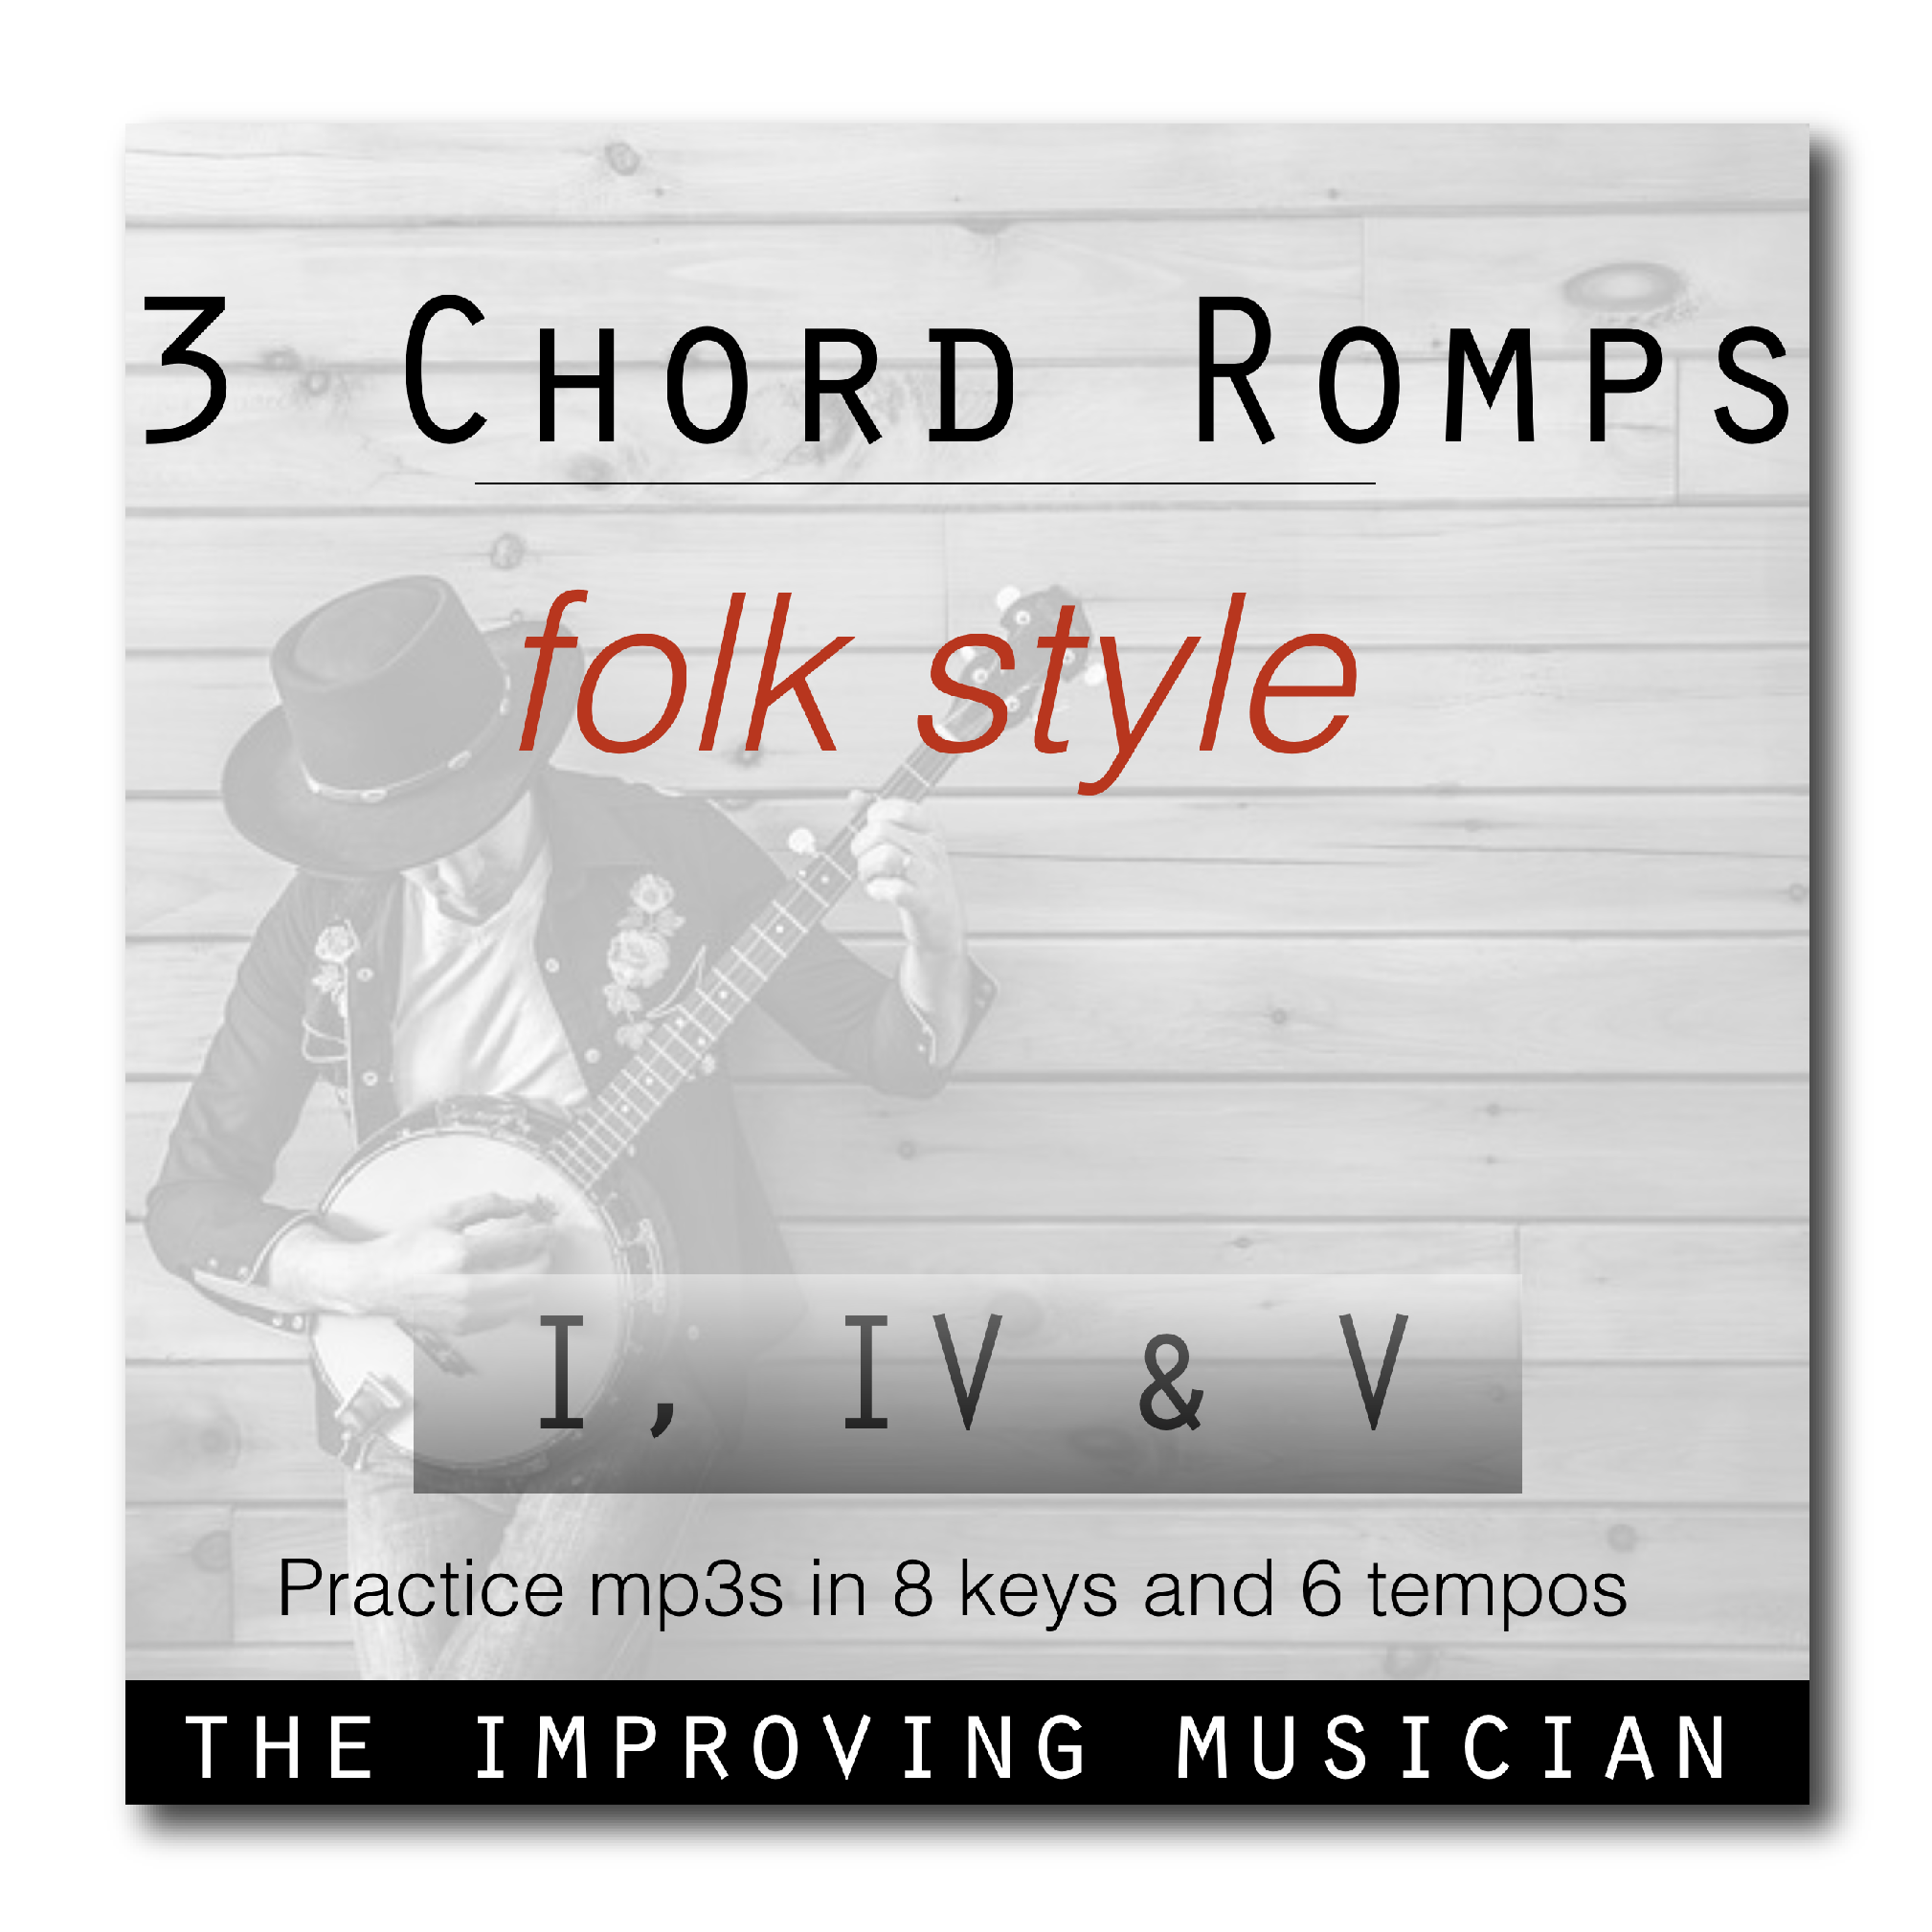 One Chord Romps (Copy)